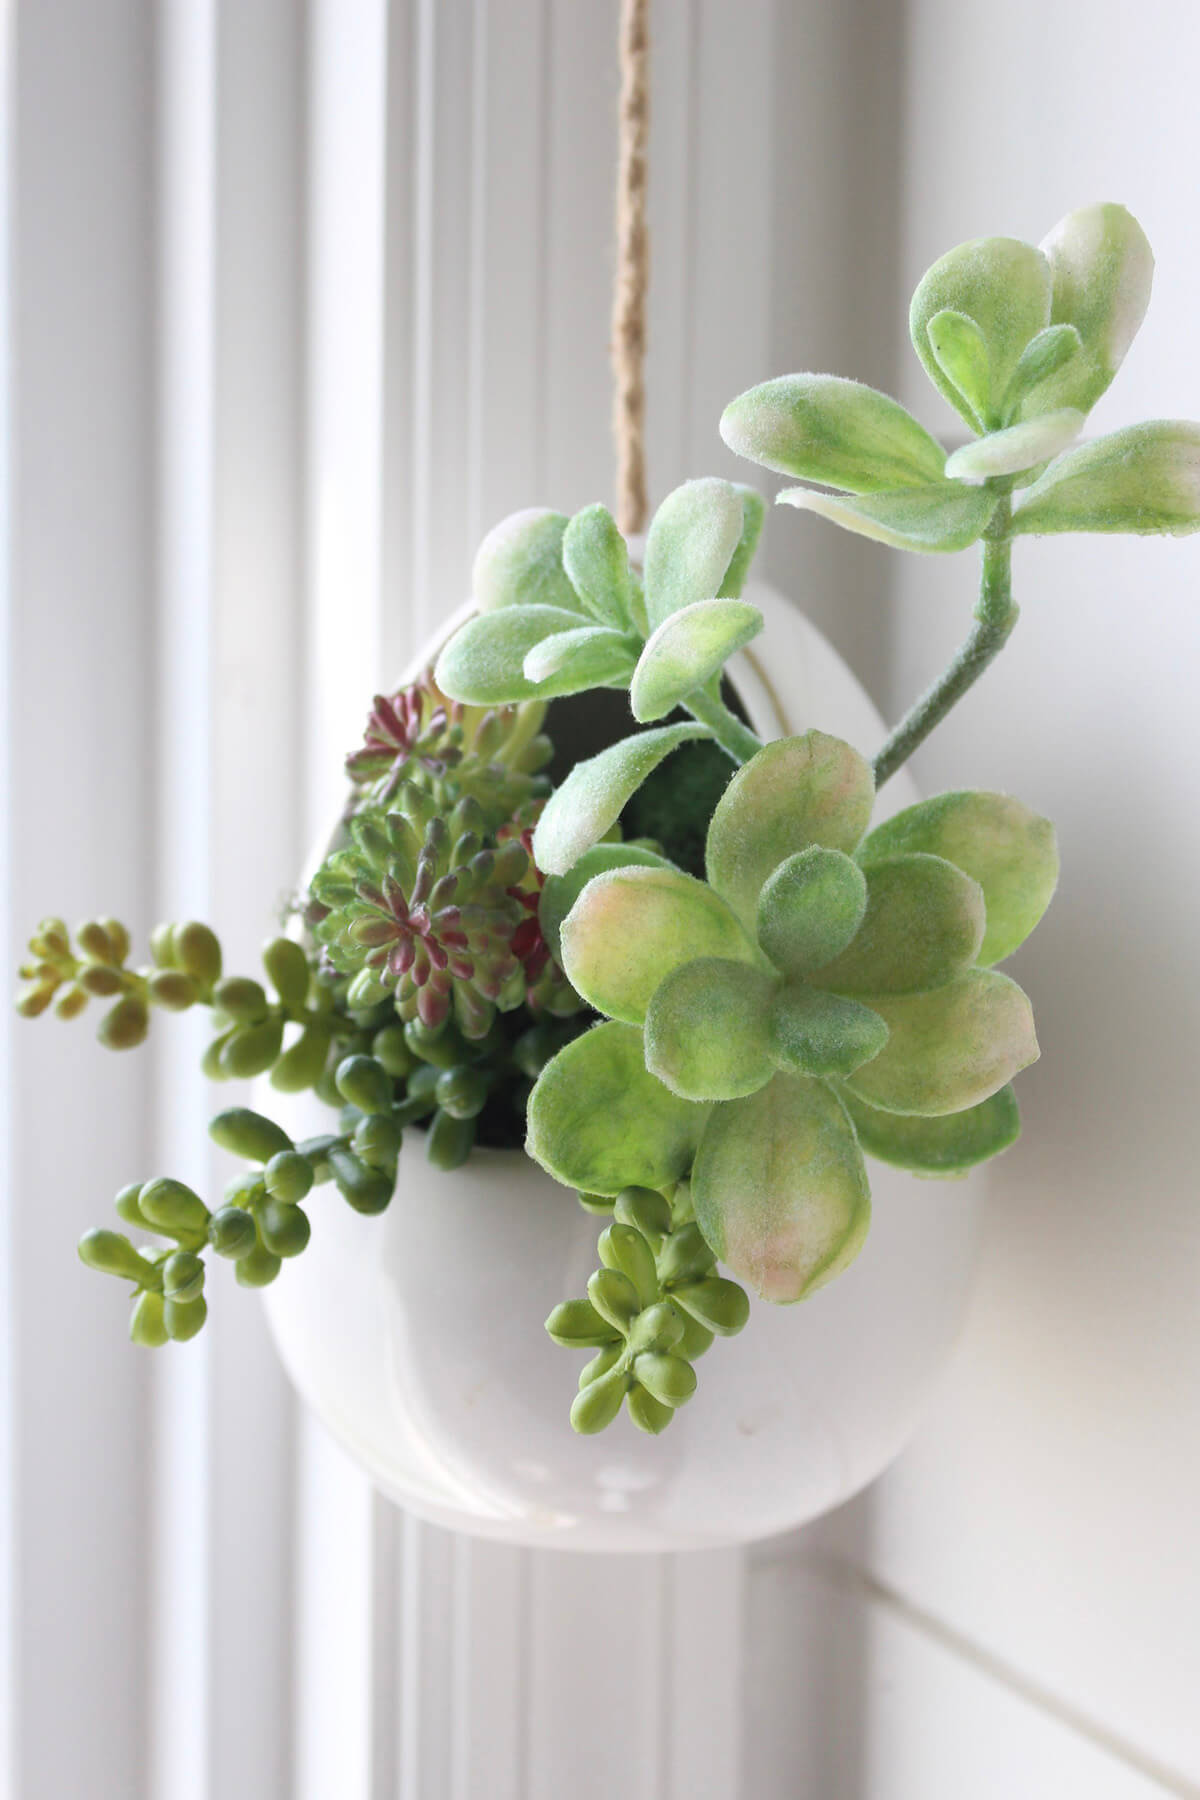 One-of-a-Kind Hanging Succulent Arrangement